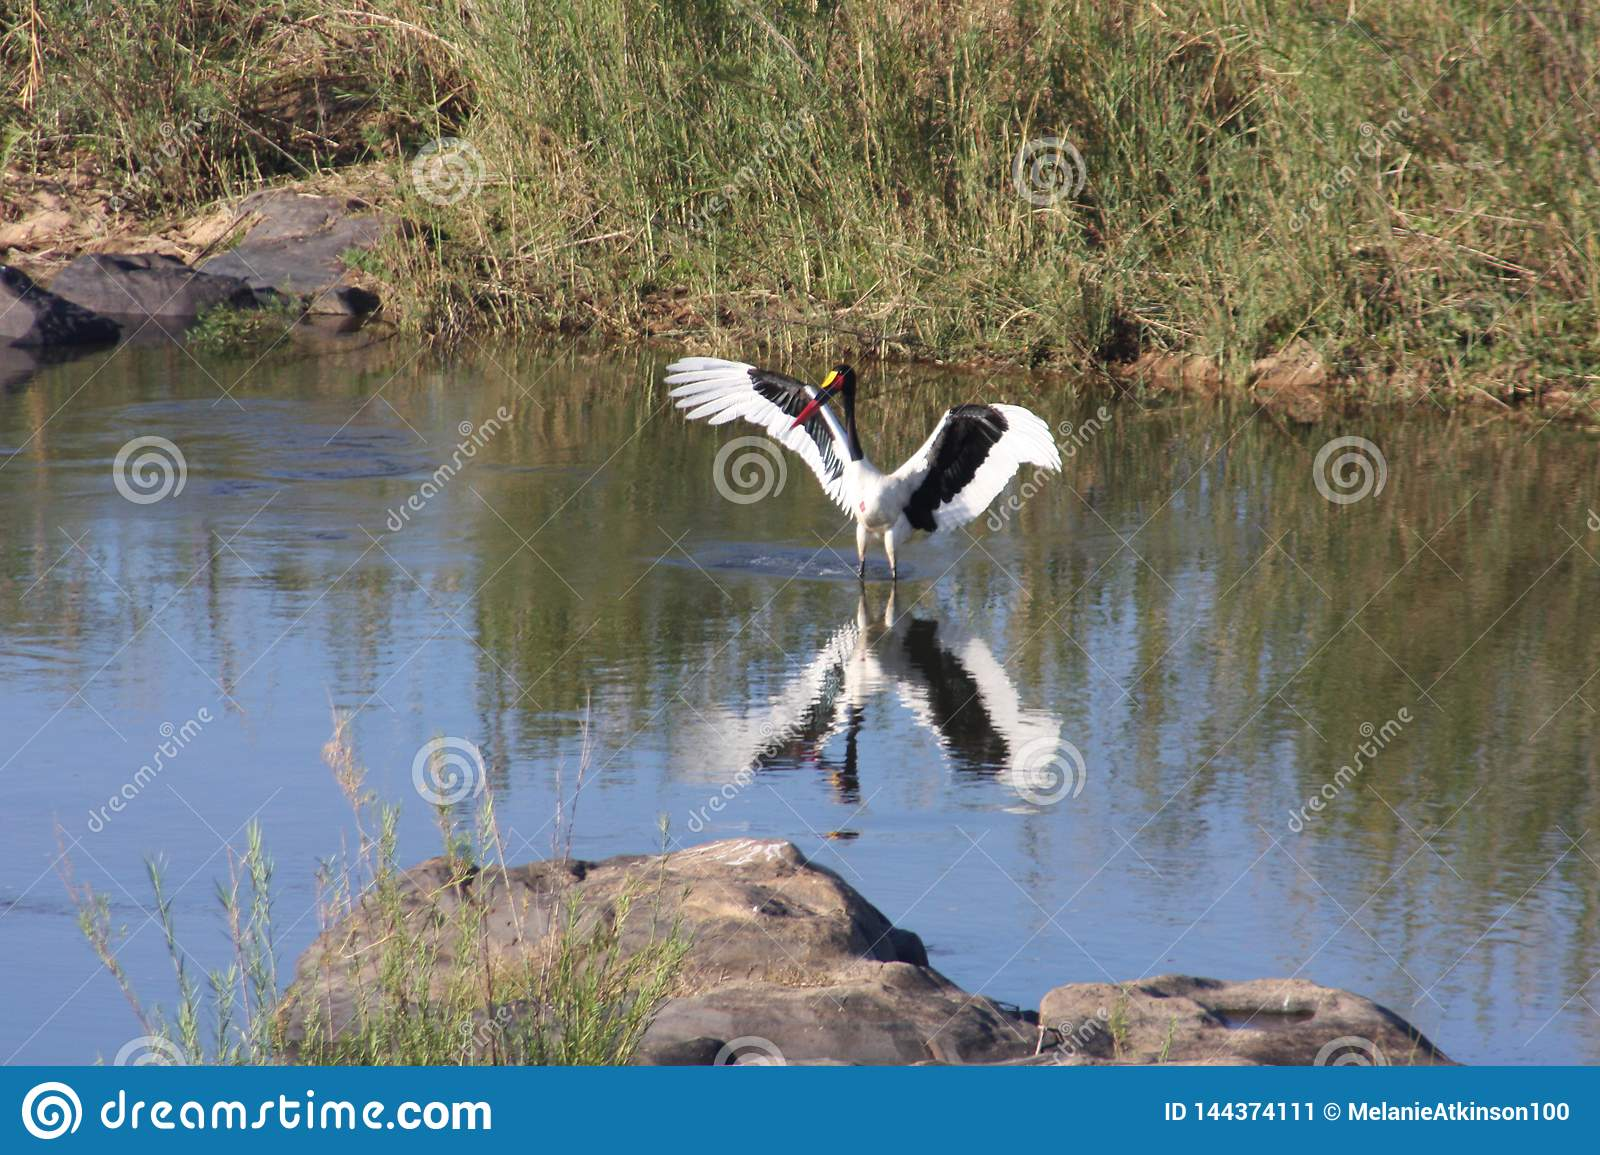 Large black and white bird standing in the water